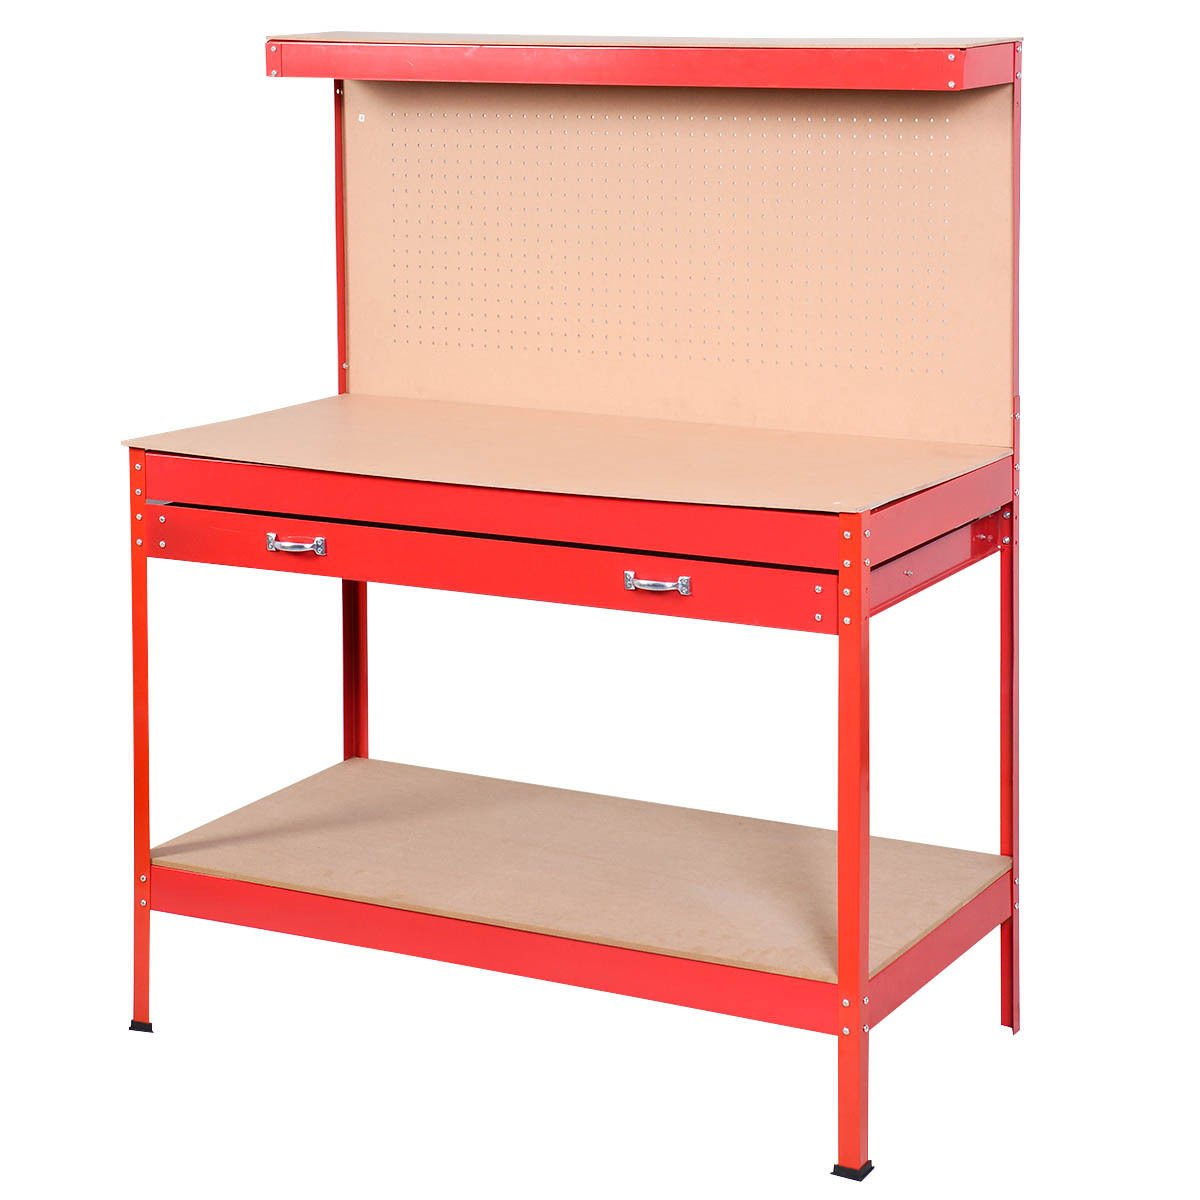 Red Work Bench Tool Storage Steel Tool Workshop Table by Tamsun